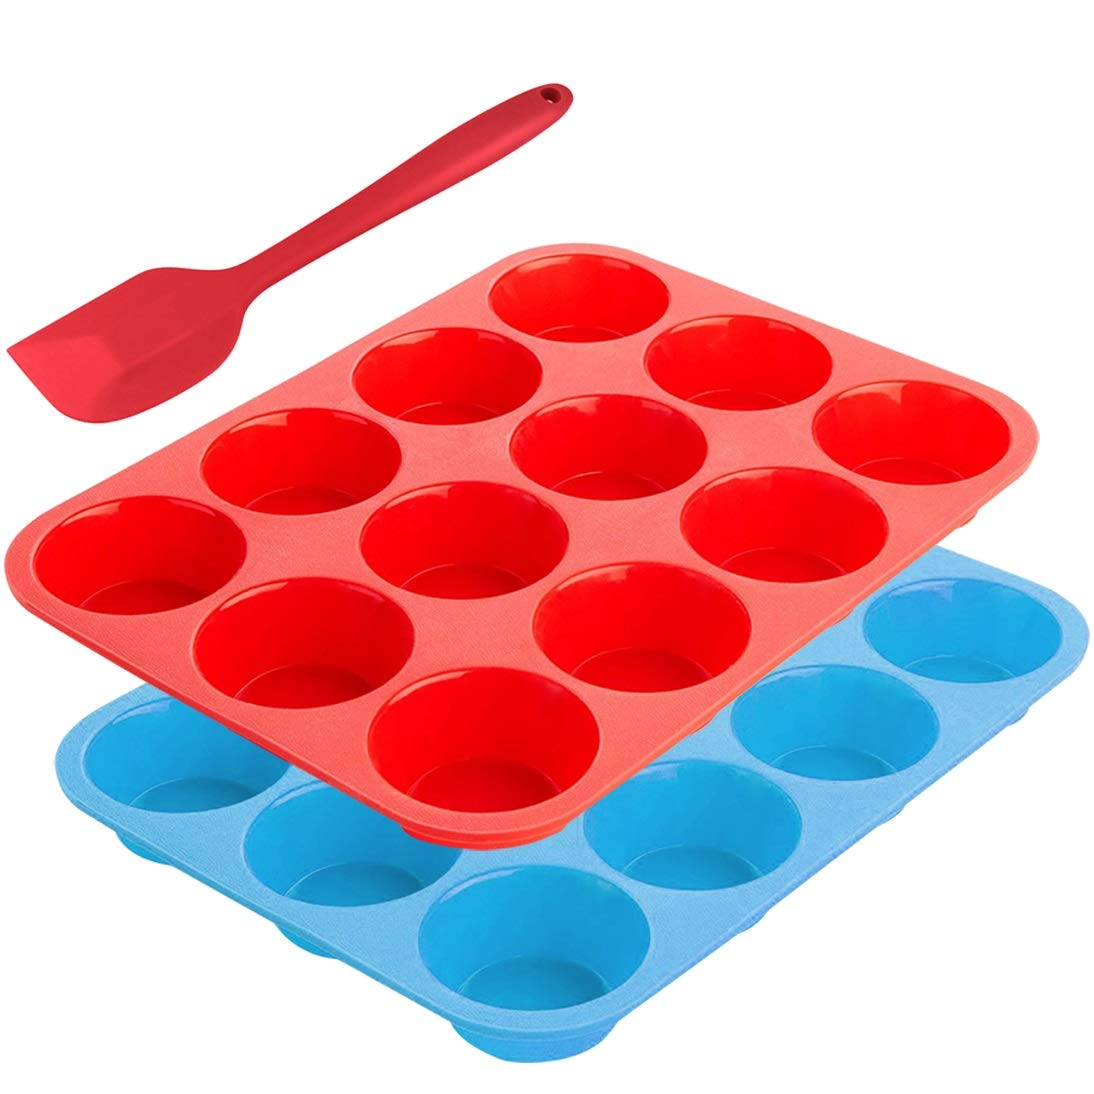 12-Cup Silicone Muffin Mold Bonus with Spatula, SourceTon 3 pcs pack of Muffin Mold and Spatula Set, Non-Stick Baking Pan, Flexible, Cupcake Pans, Dishwasher, Oven, Microwave Oven Safe. Blue + Red EXPSFN011641